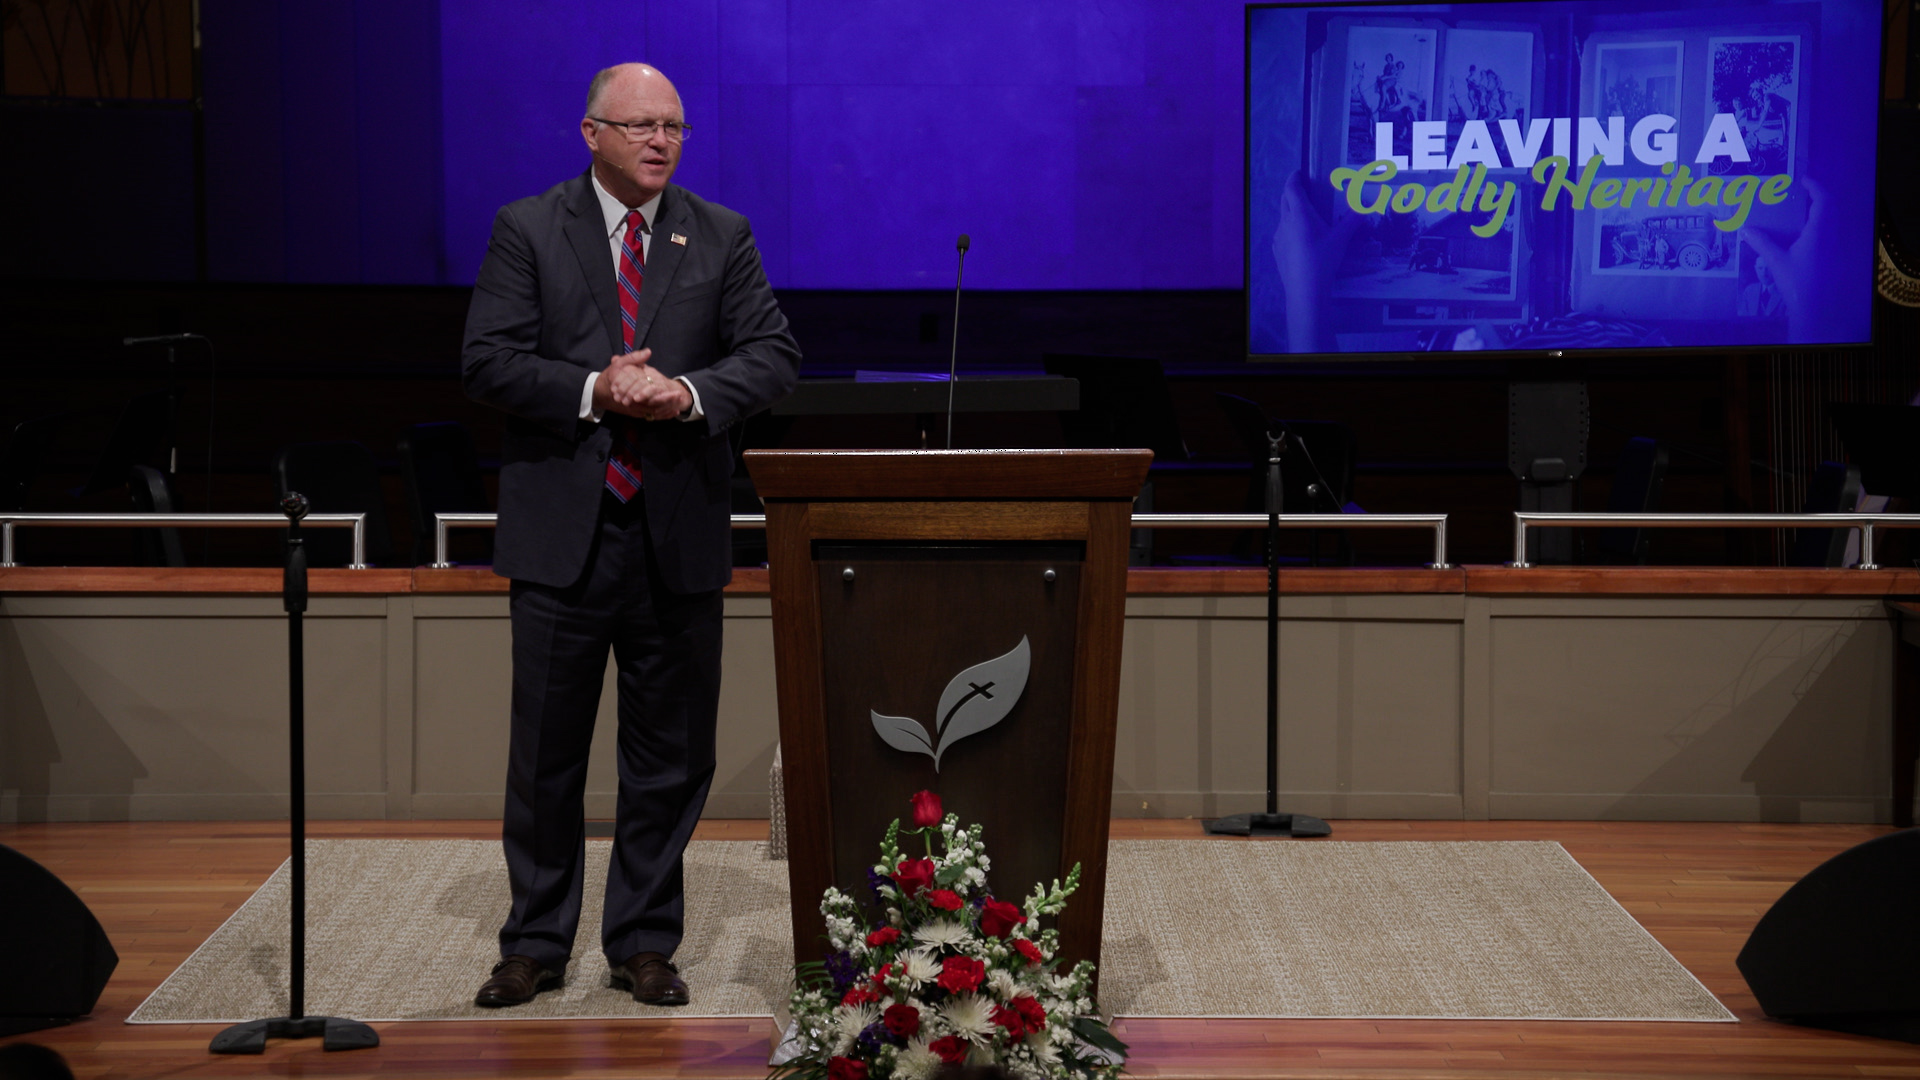 Pastor Paul Chappell: Leaving a Godly Heritage